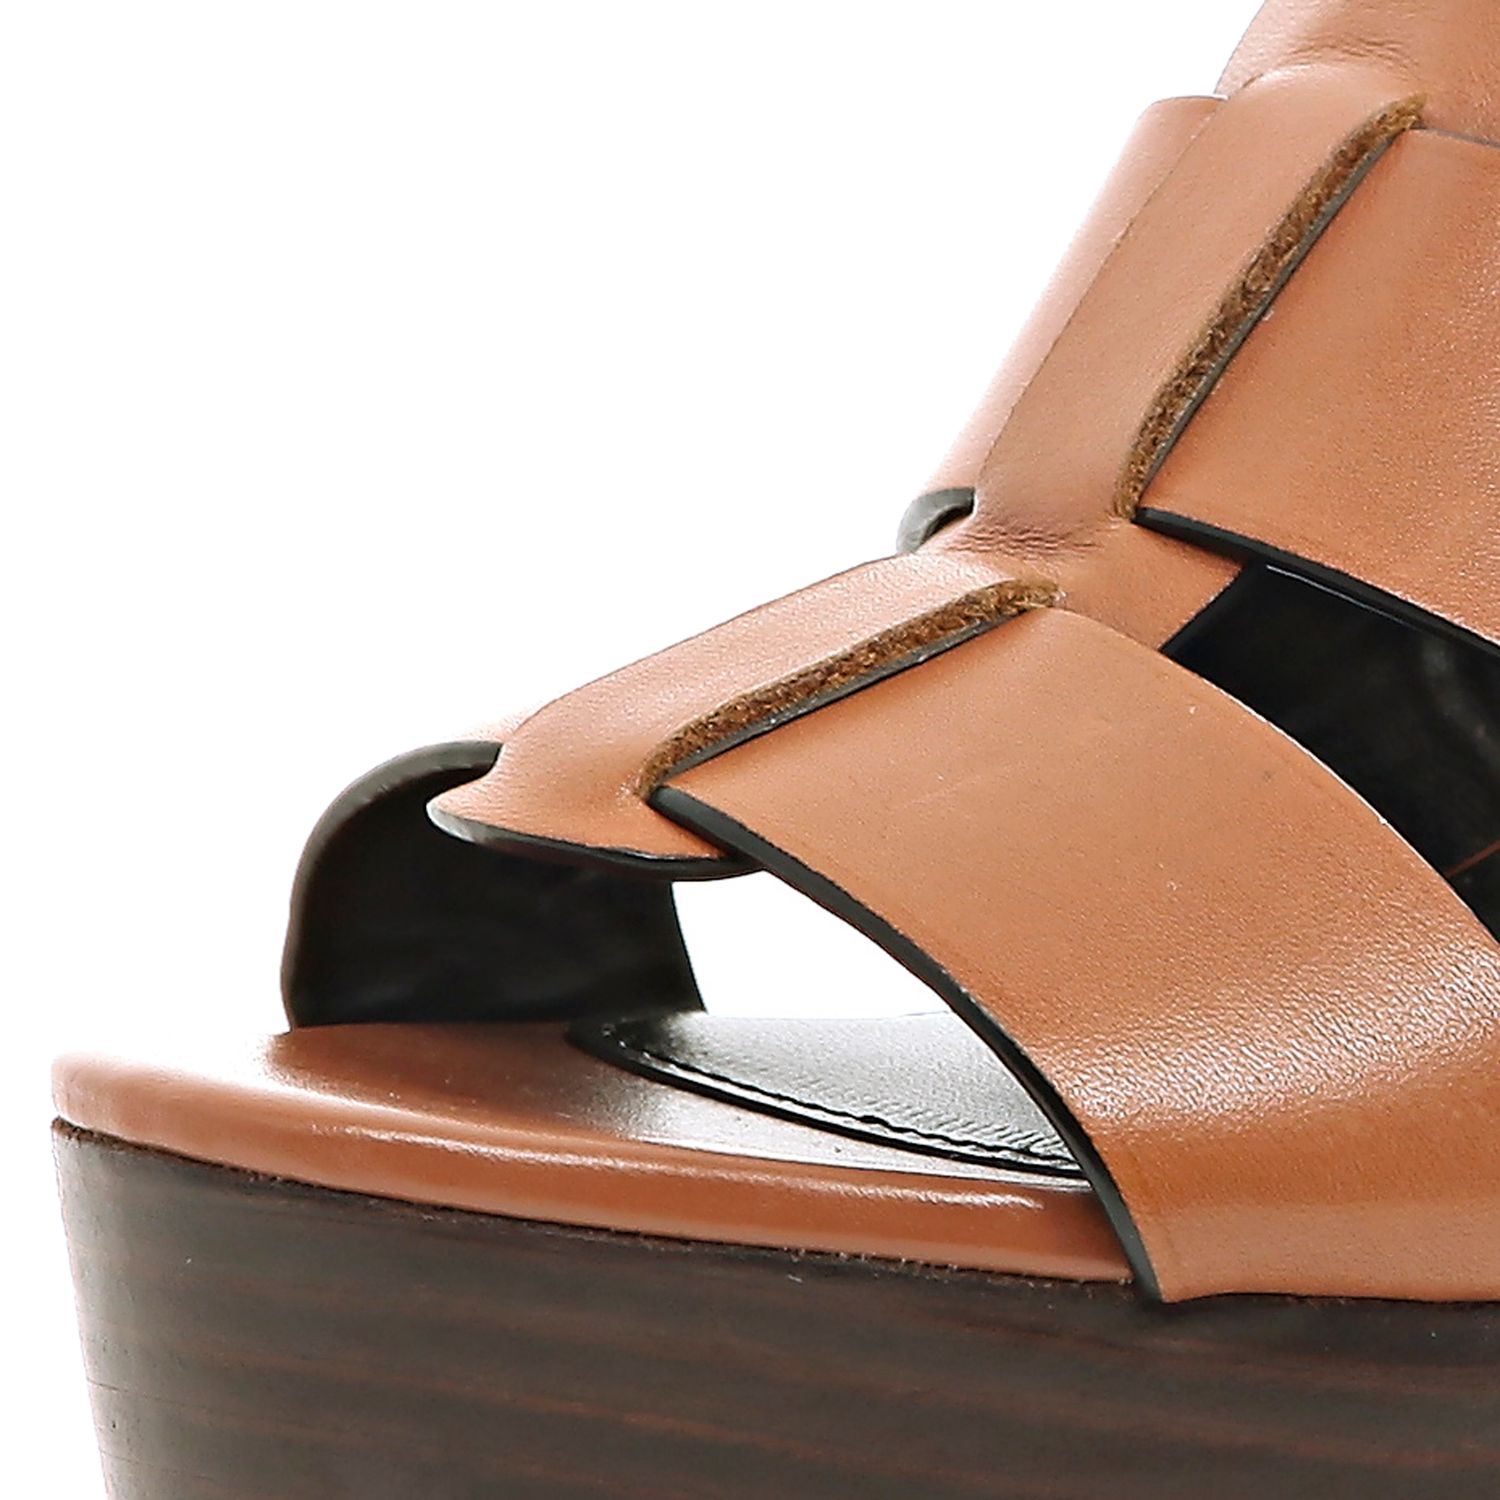 Flat mule with pointed toe and bow detail Vince Camuto is a true footwear innovator, both of design and of industry. The designer and creator of the Camuto group, Vince Camuto produces many brands and styles, and Vince Camuto women's shoes are among the .